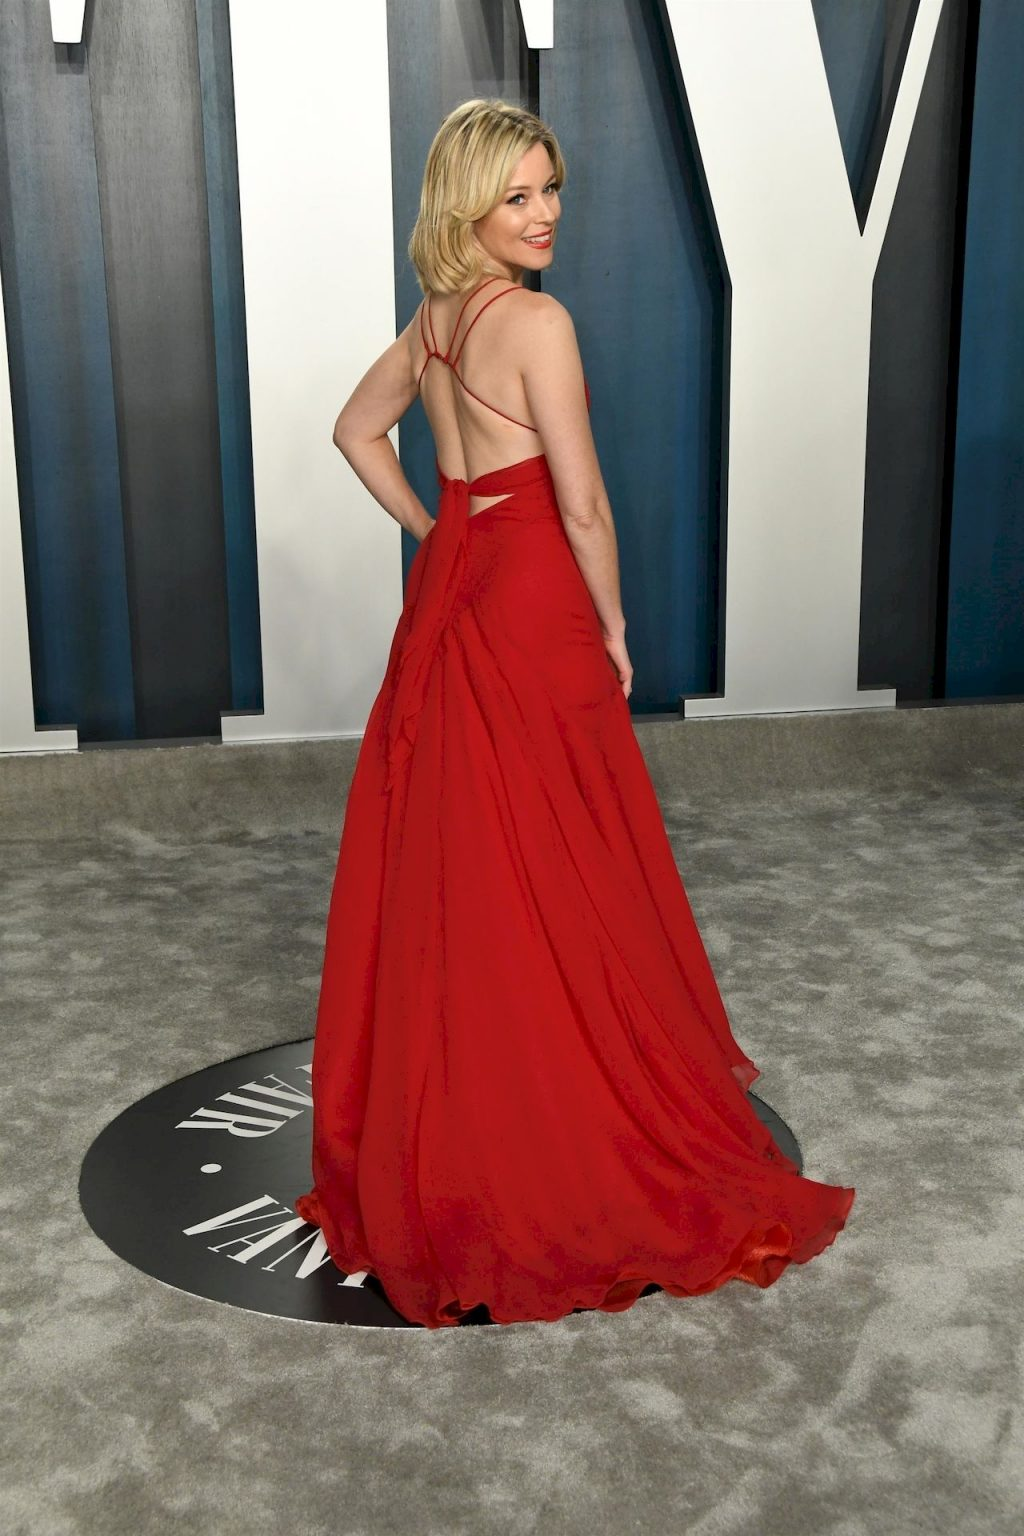 Elizabeth Banks Looks Sexy in a Red Dress at the 2020 Vanity Fair Oscar Party (12 Photos)